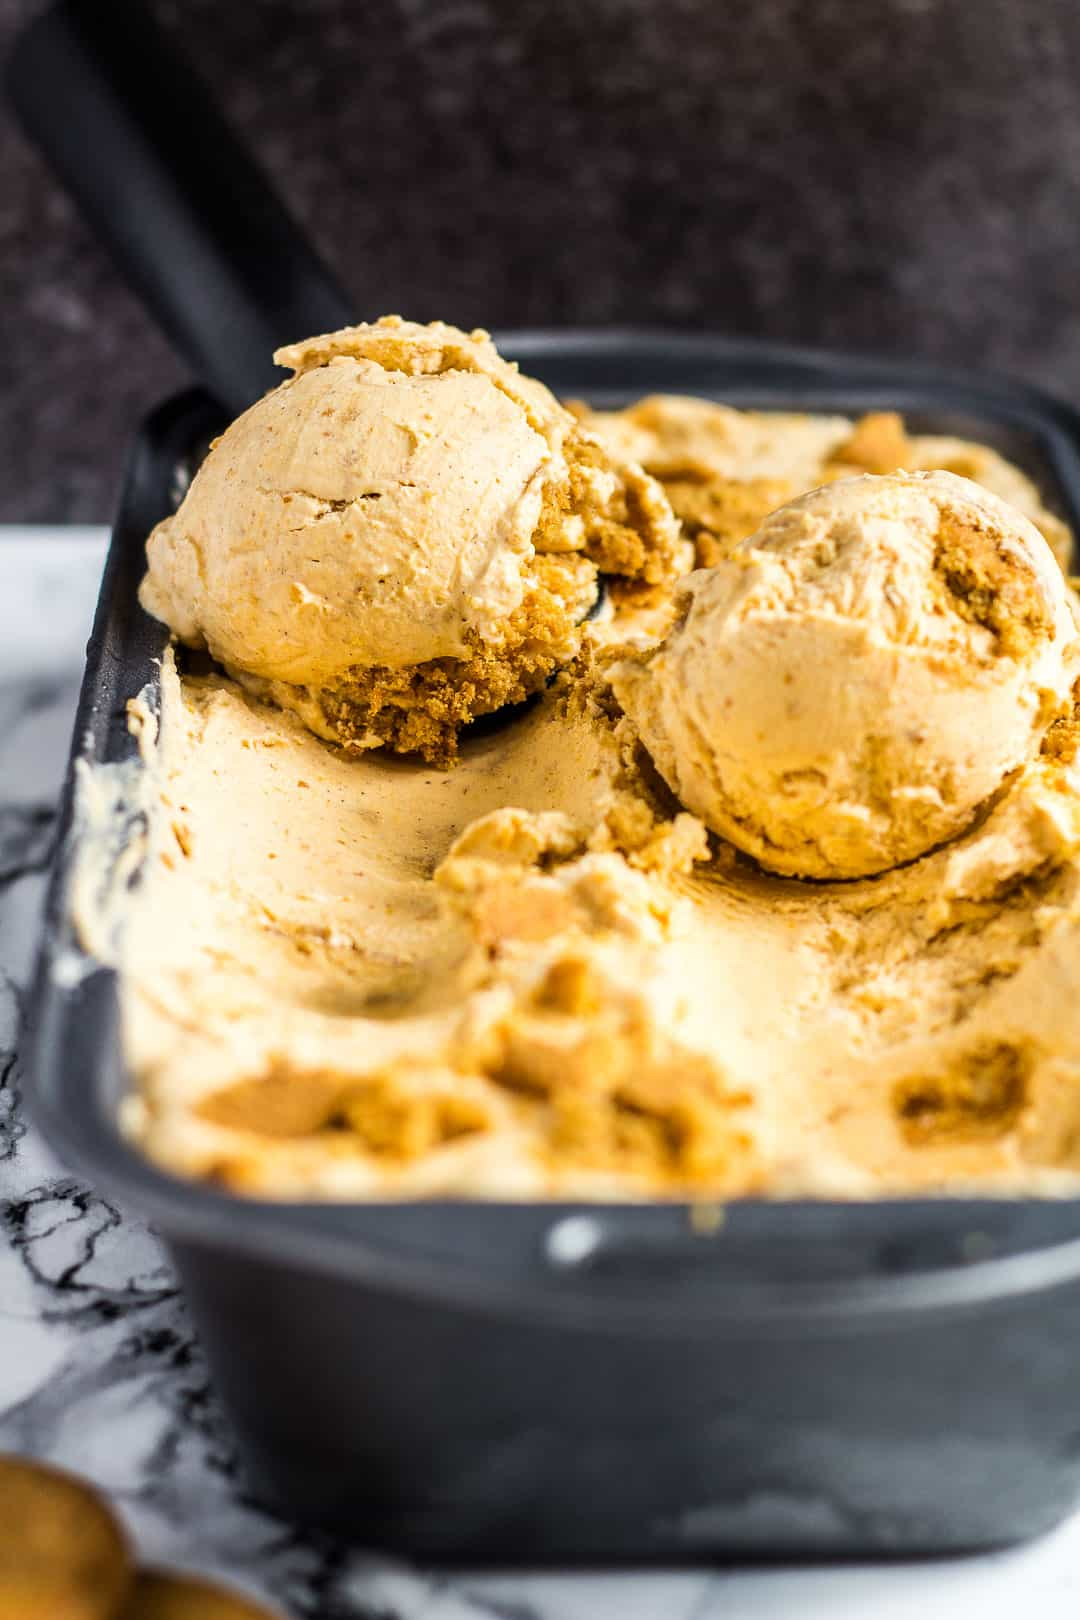 Pumpkin gingerbread ice cream in a loaf pan being scooped up.